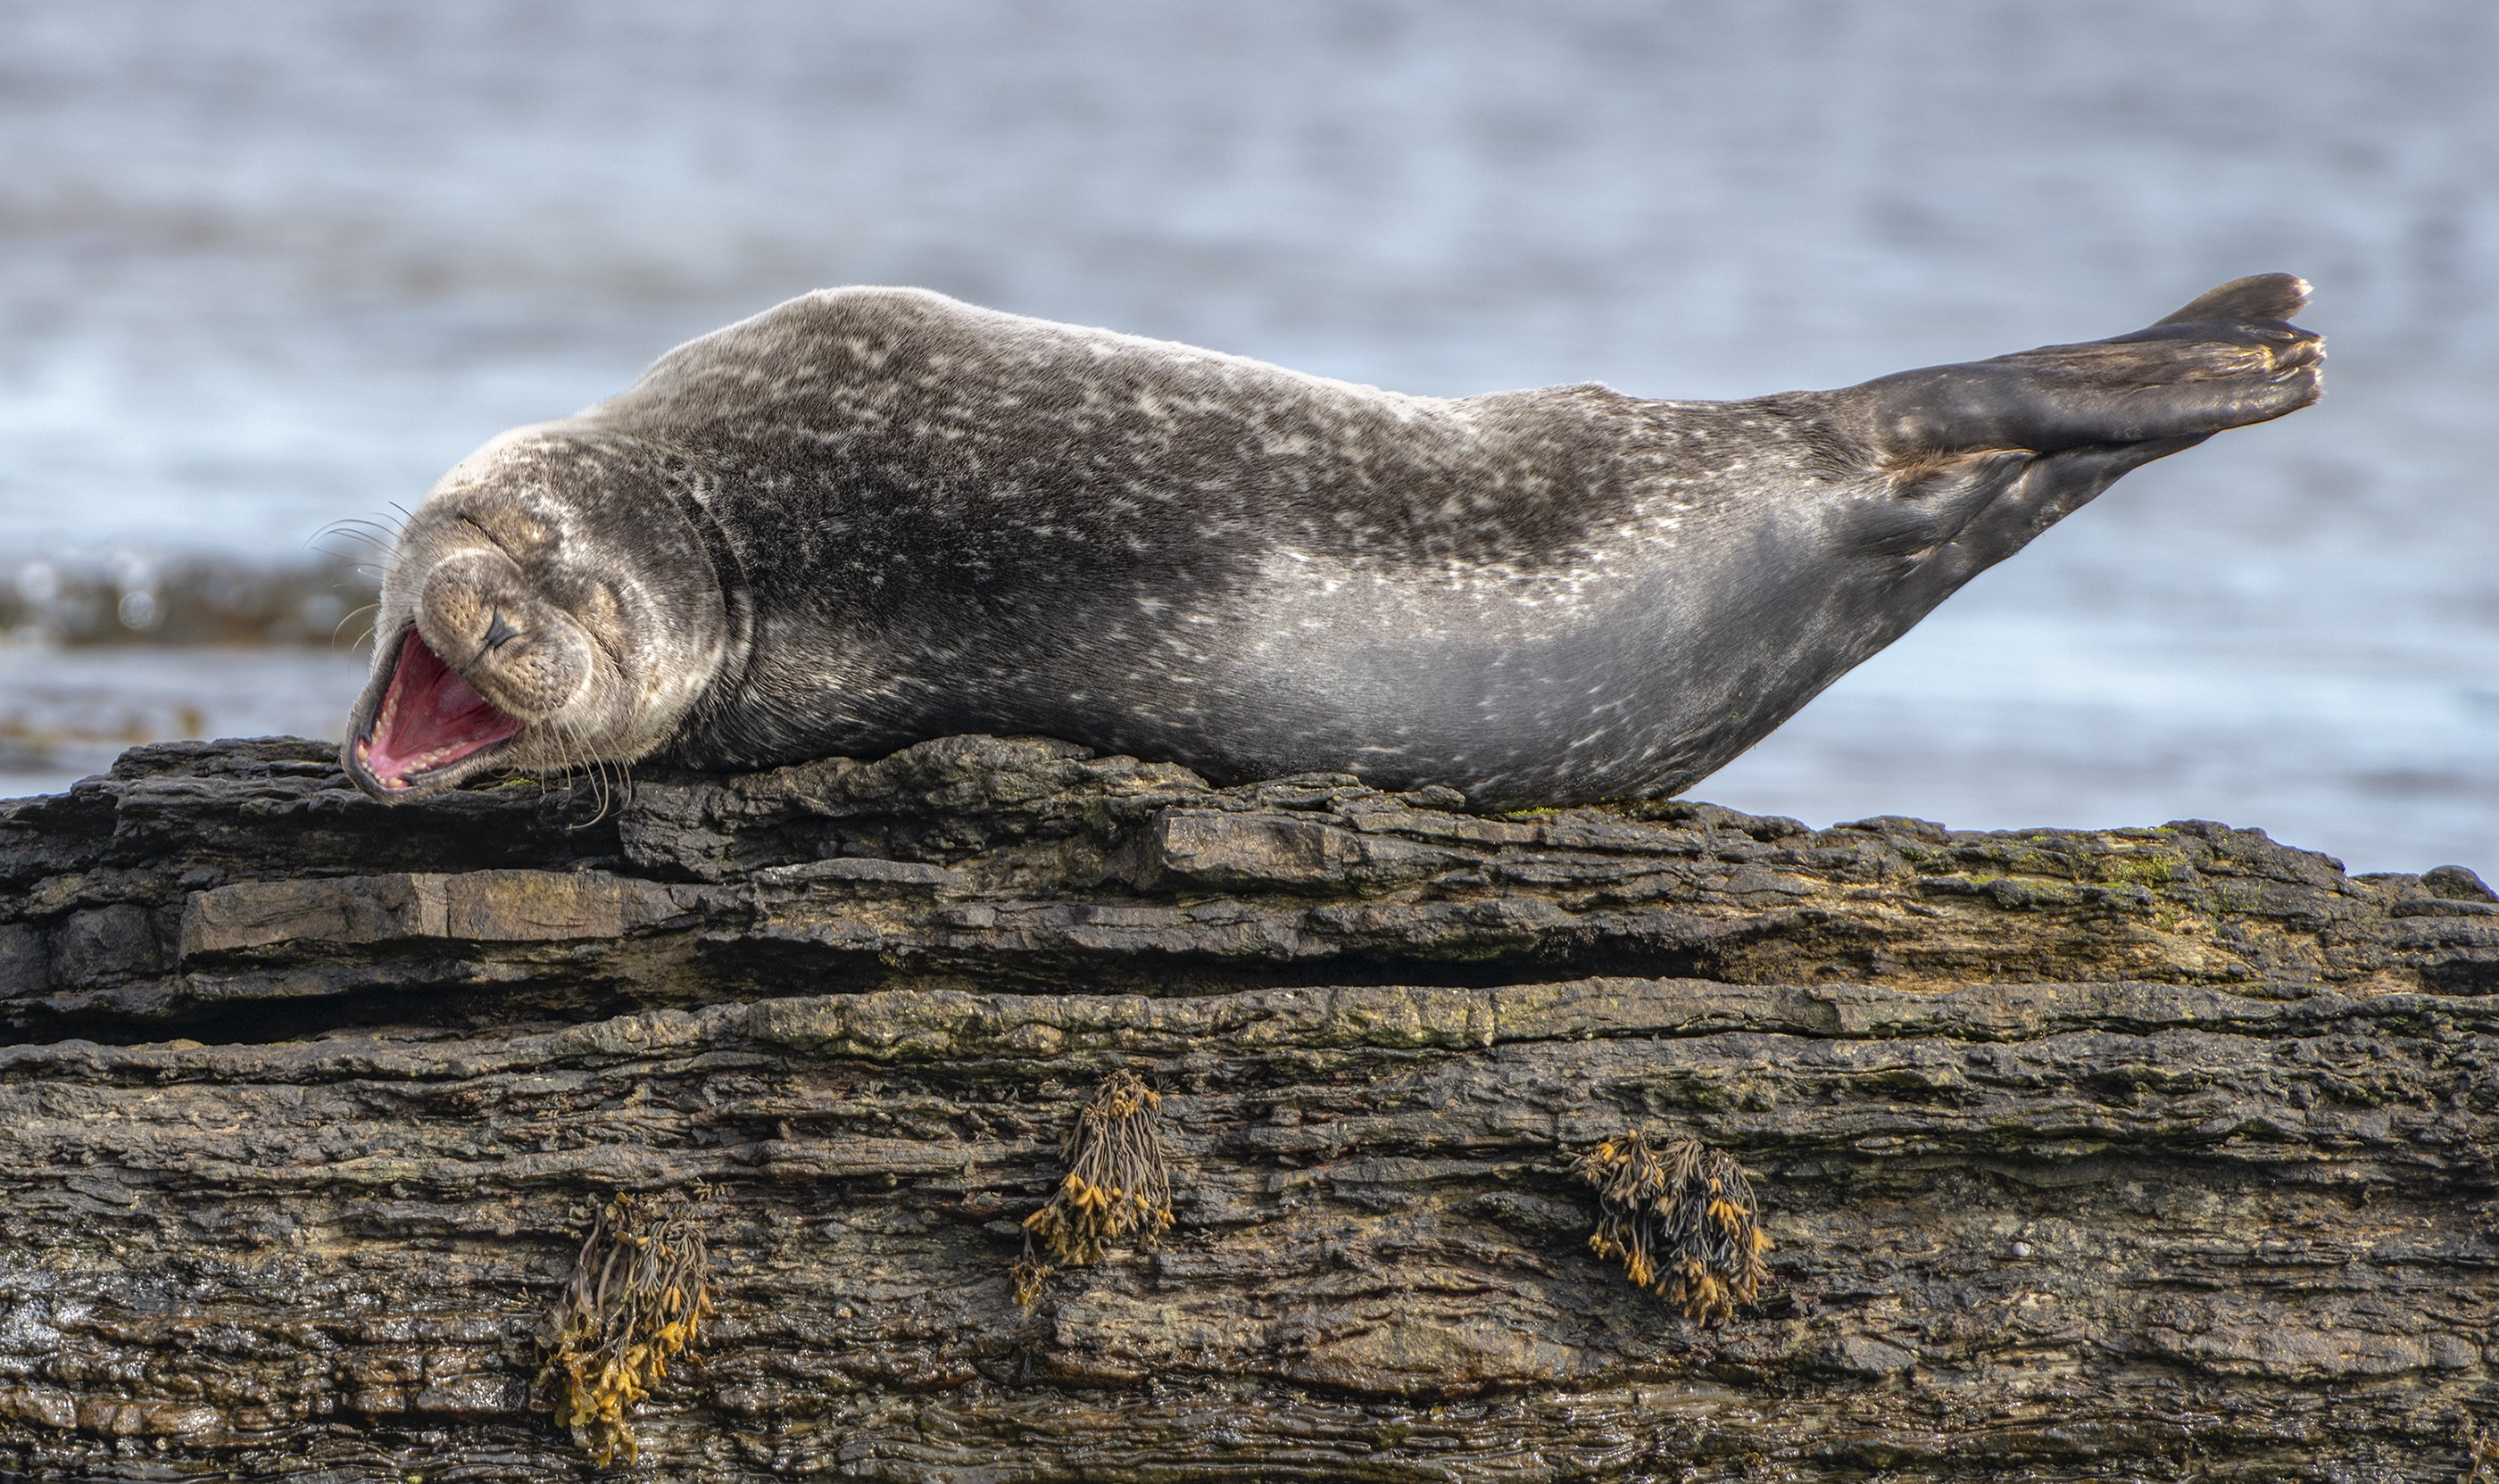 An outstretched seal with a jaunty tail in the air has her mouth wide open and eyes crinkled shut like a big laugh